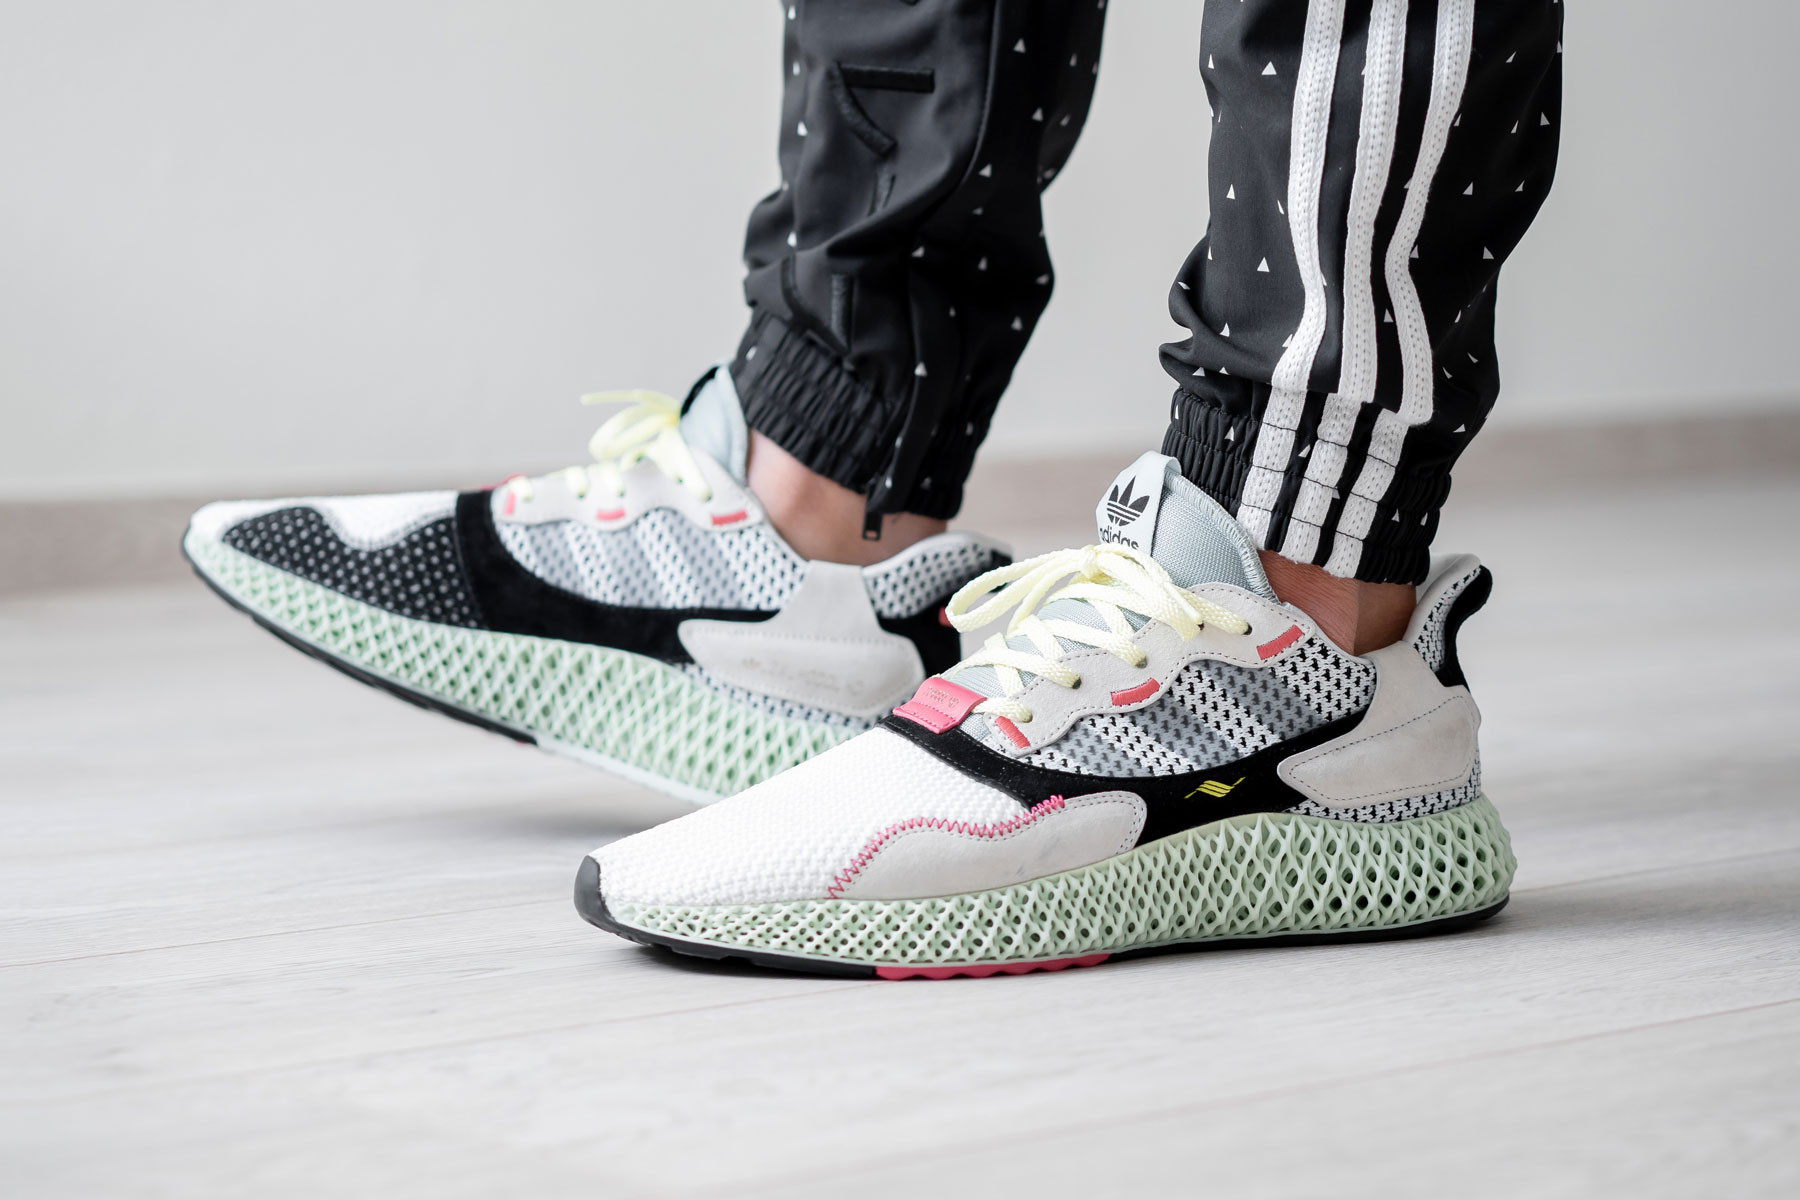 adidas ZX 4000 With 4D Sole Is Dropping